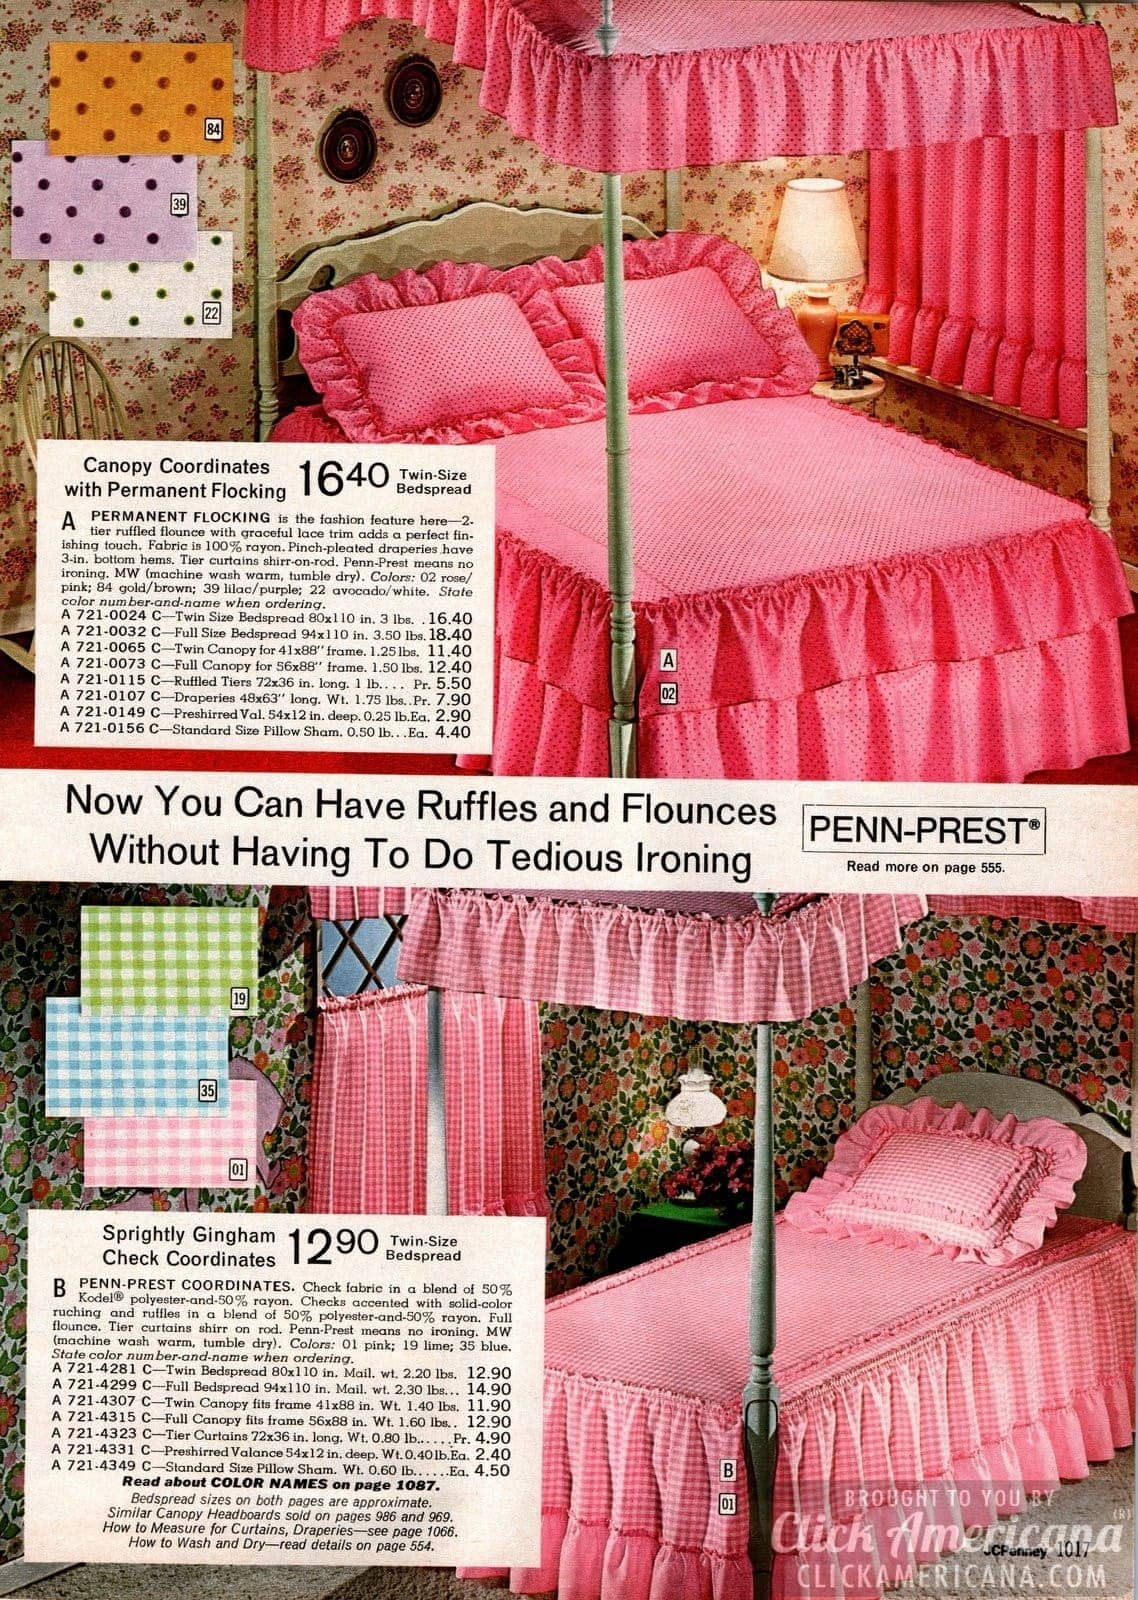 Canopy beds with ruffles and flounces in pink gingham and polka dots